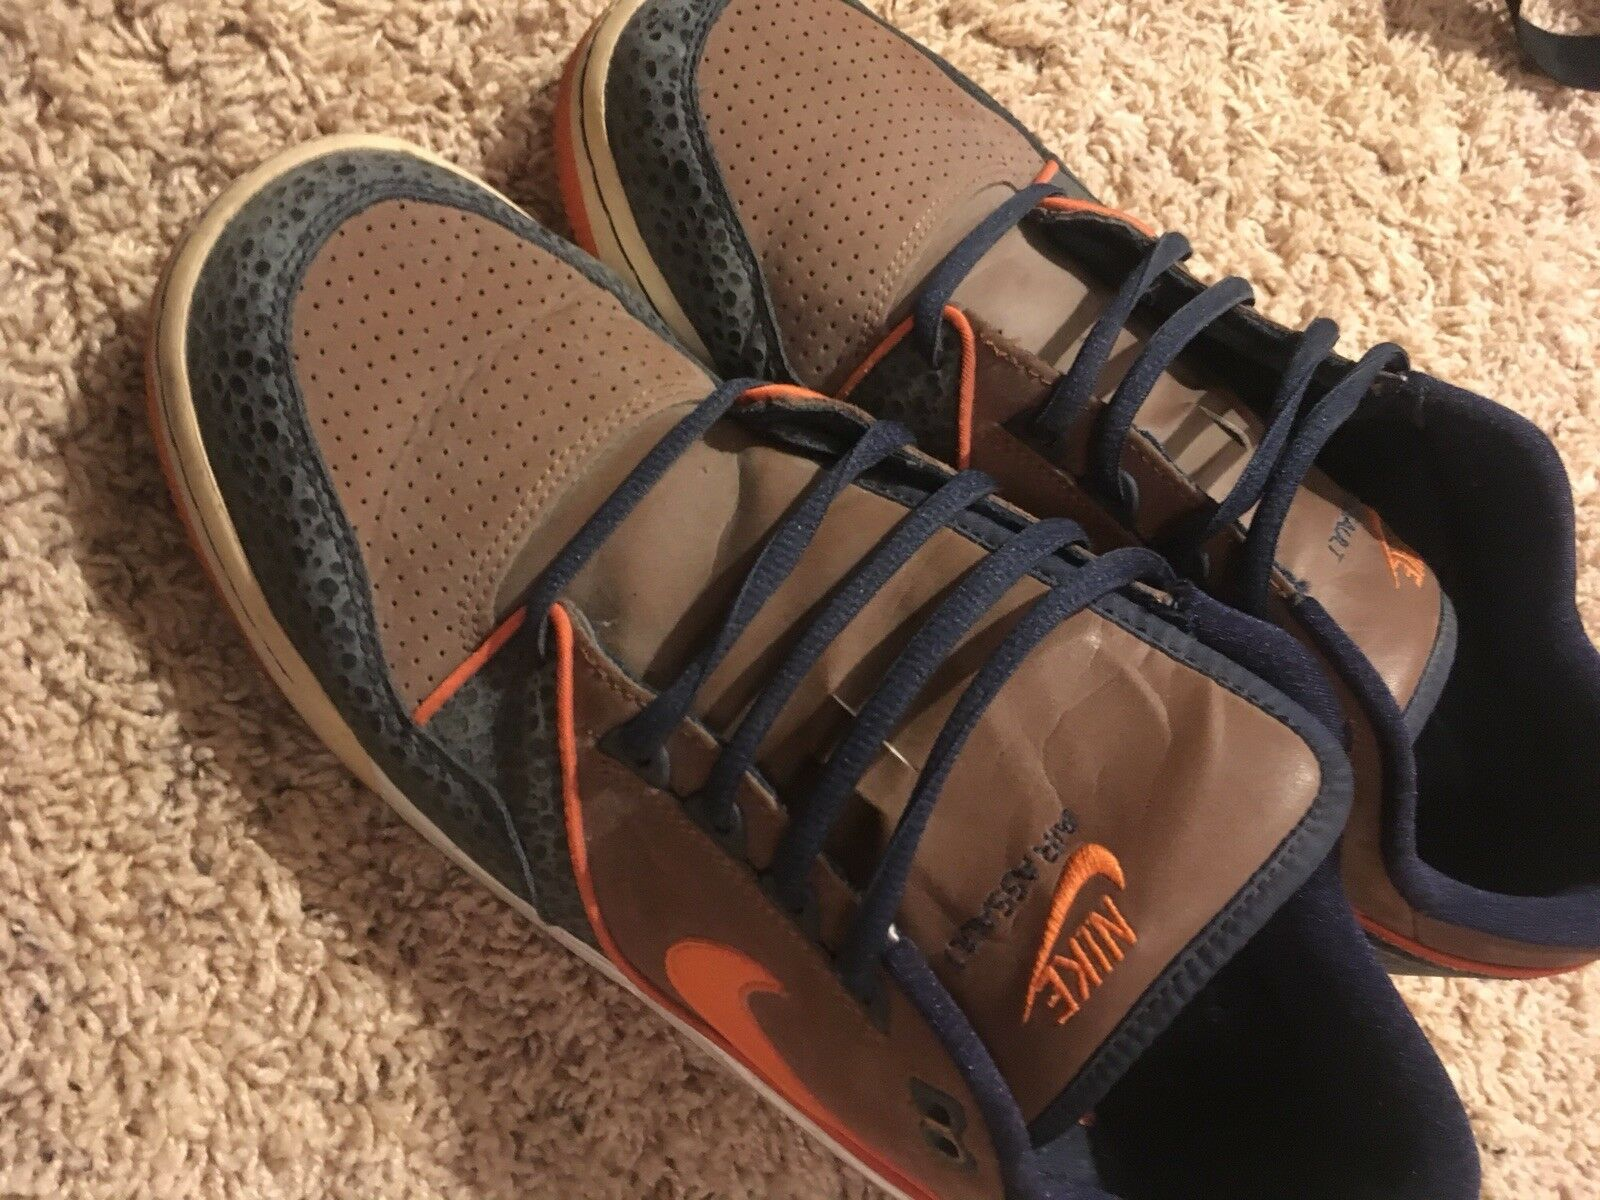 Nike AIR MAX ASSAULT Price reduction - Rustic / Orange / Obsidian The latest discount shoes for men and women